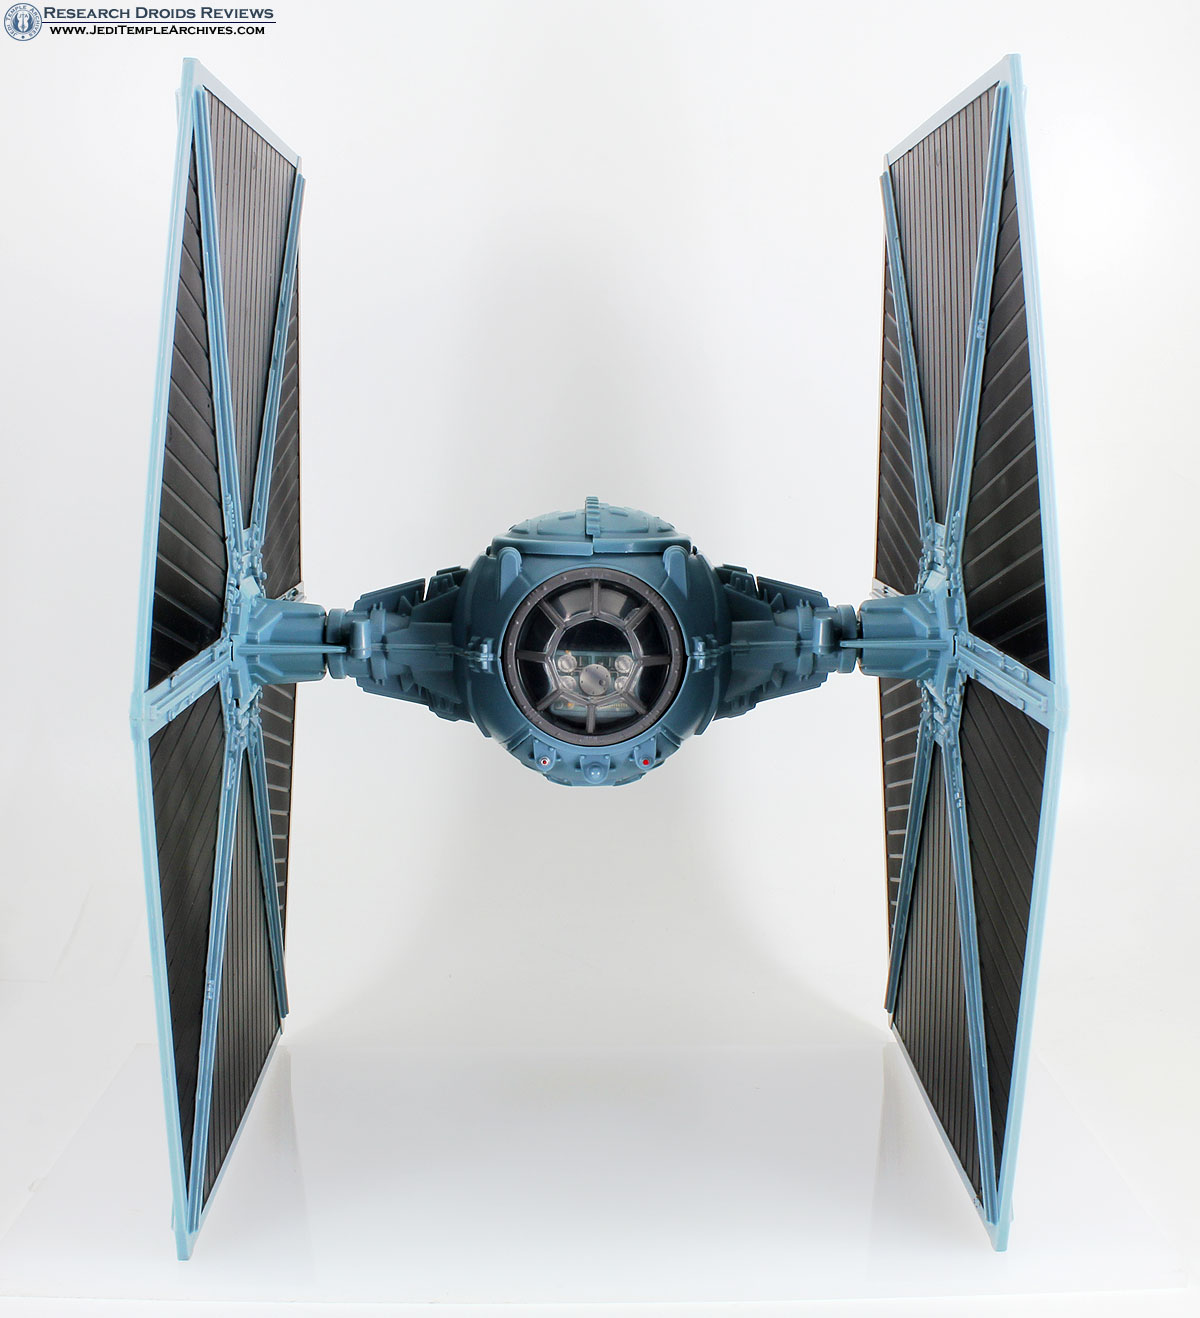 TIE Fighter (Standard Starfighter of the Imperial Forces)